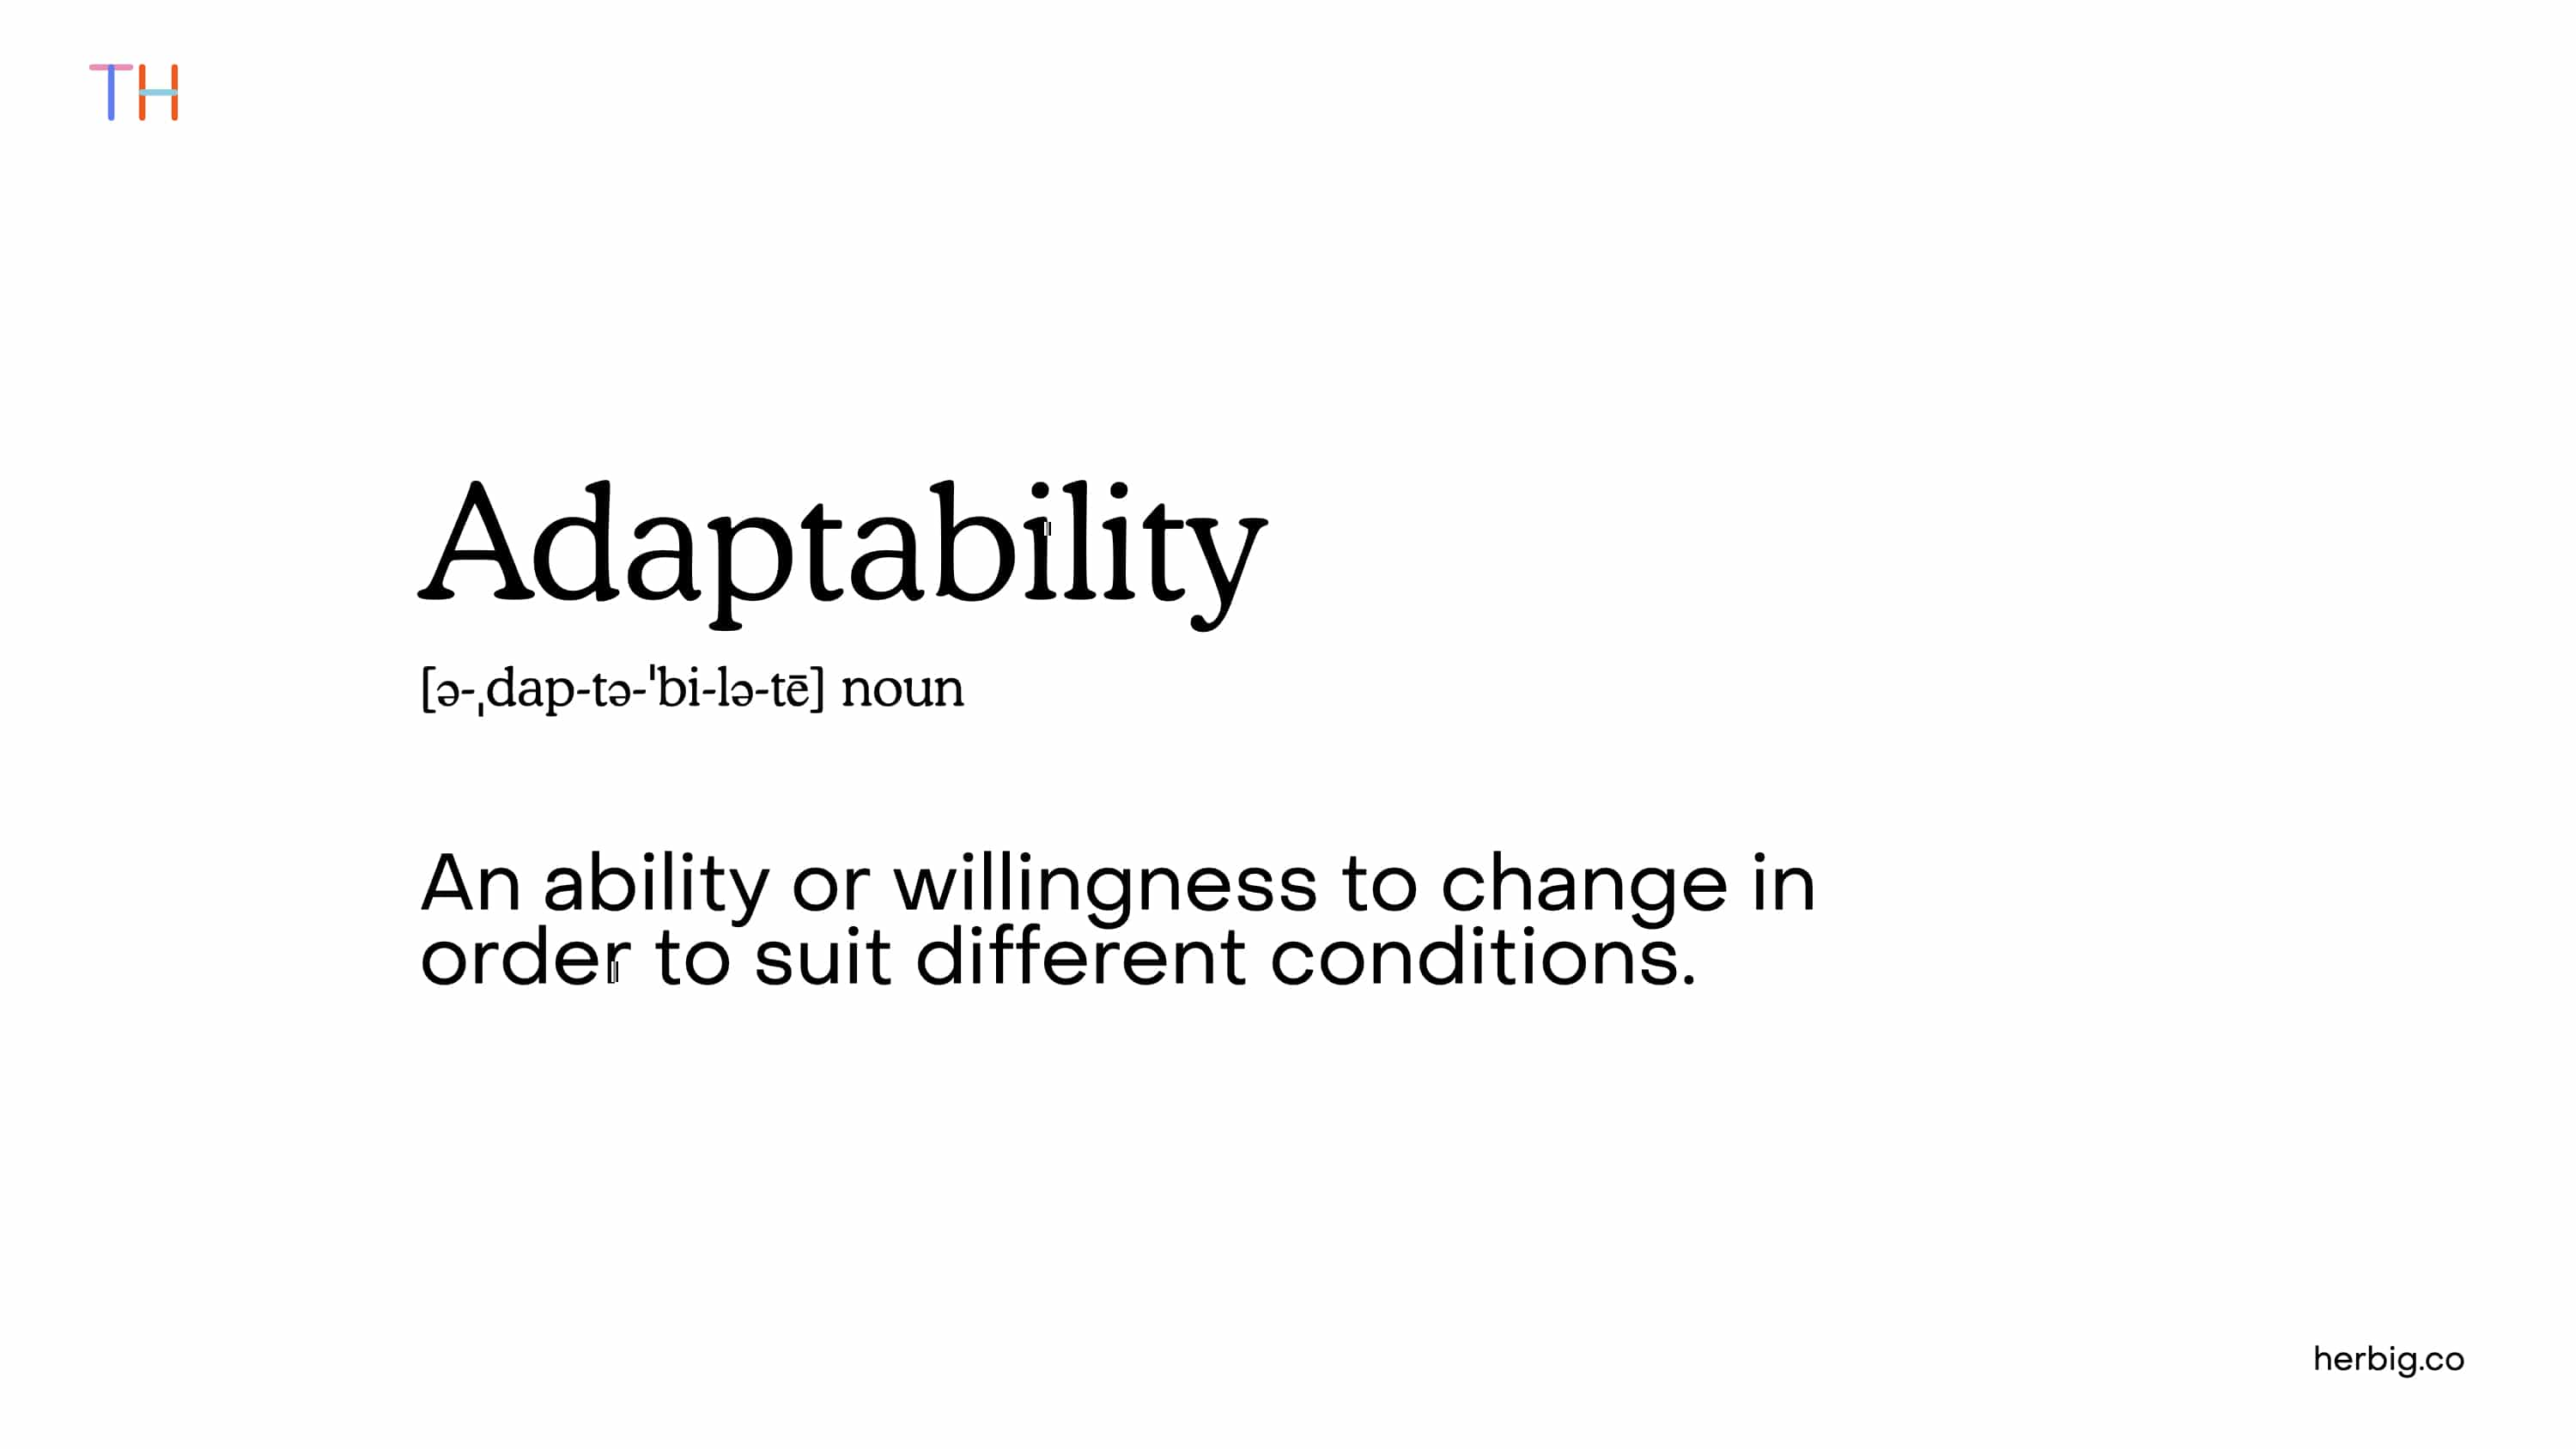 Adaptability in Product Discovery Definition - Updated